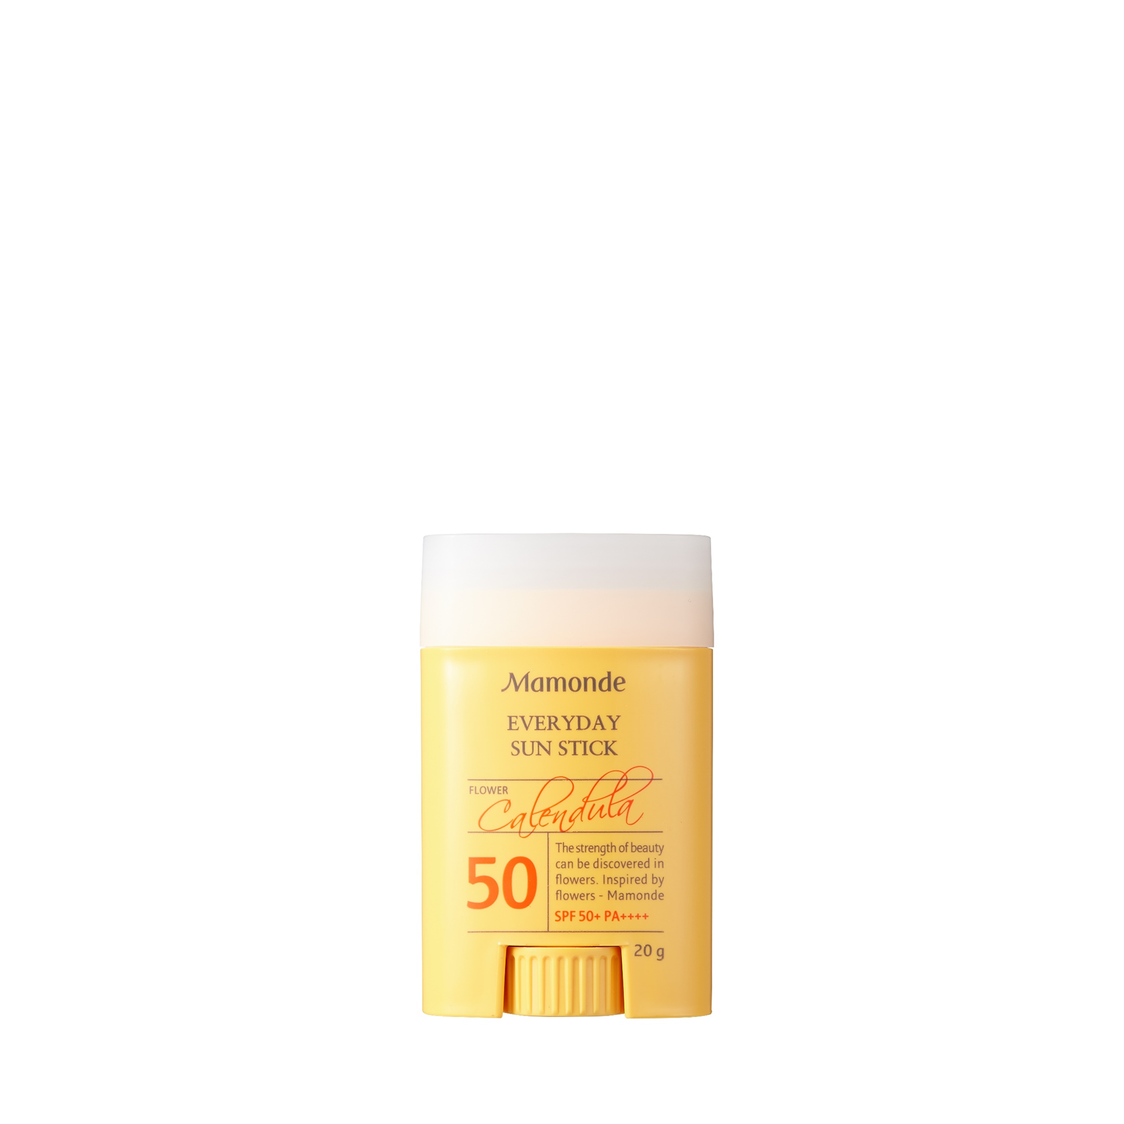 Calendula Everyday Sun Stick SPF50PA